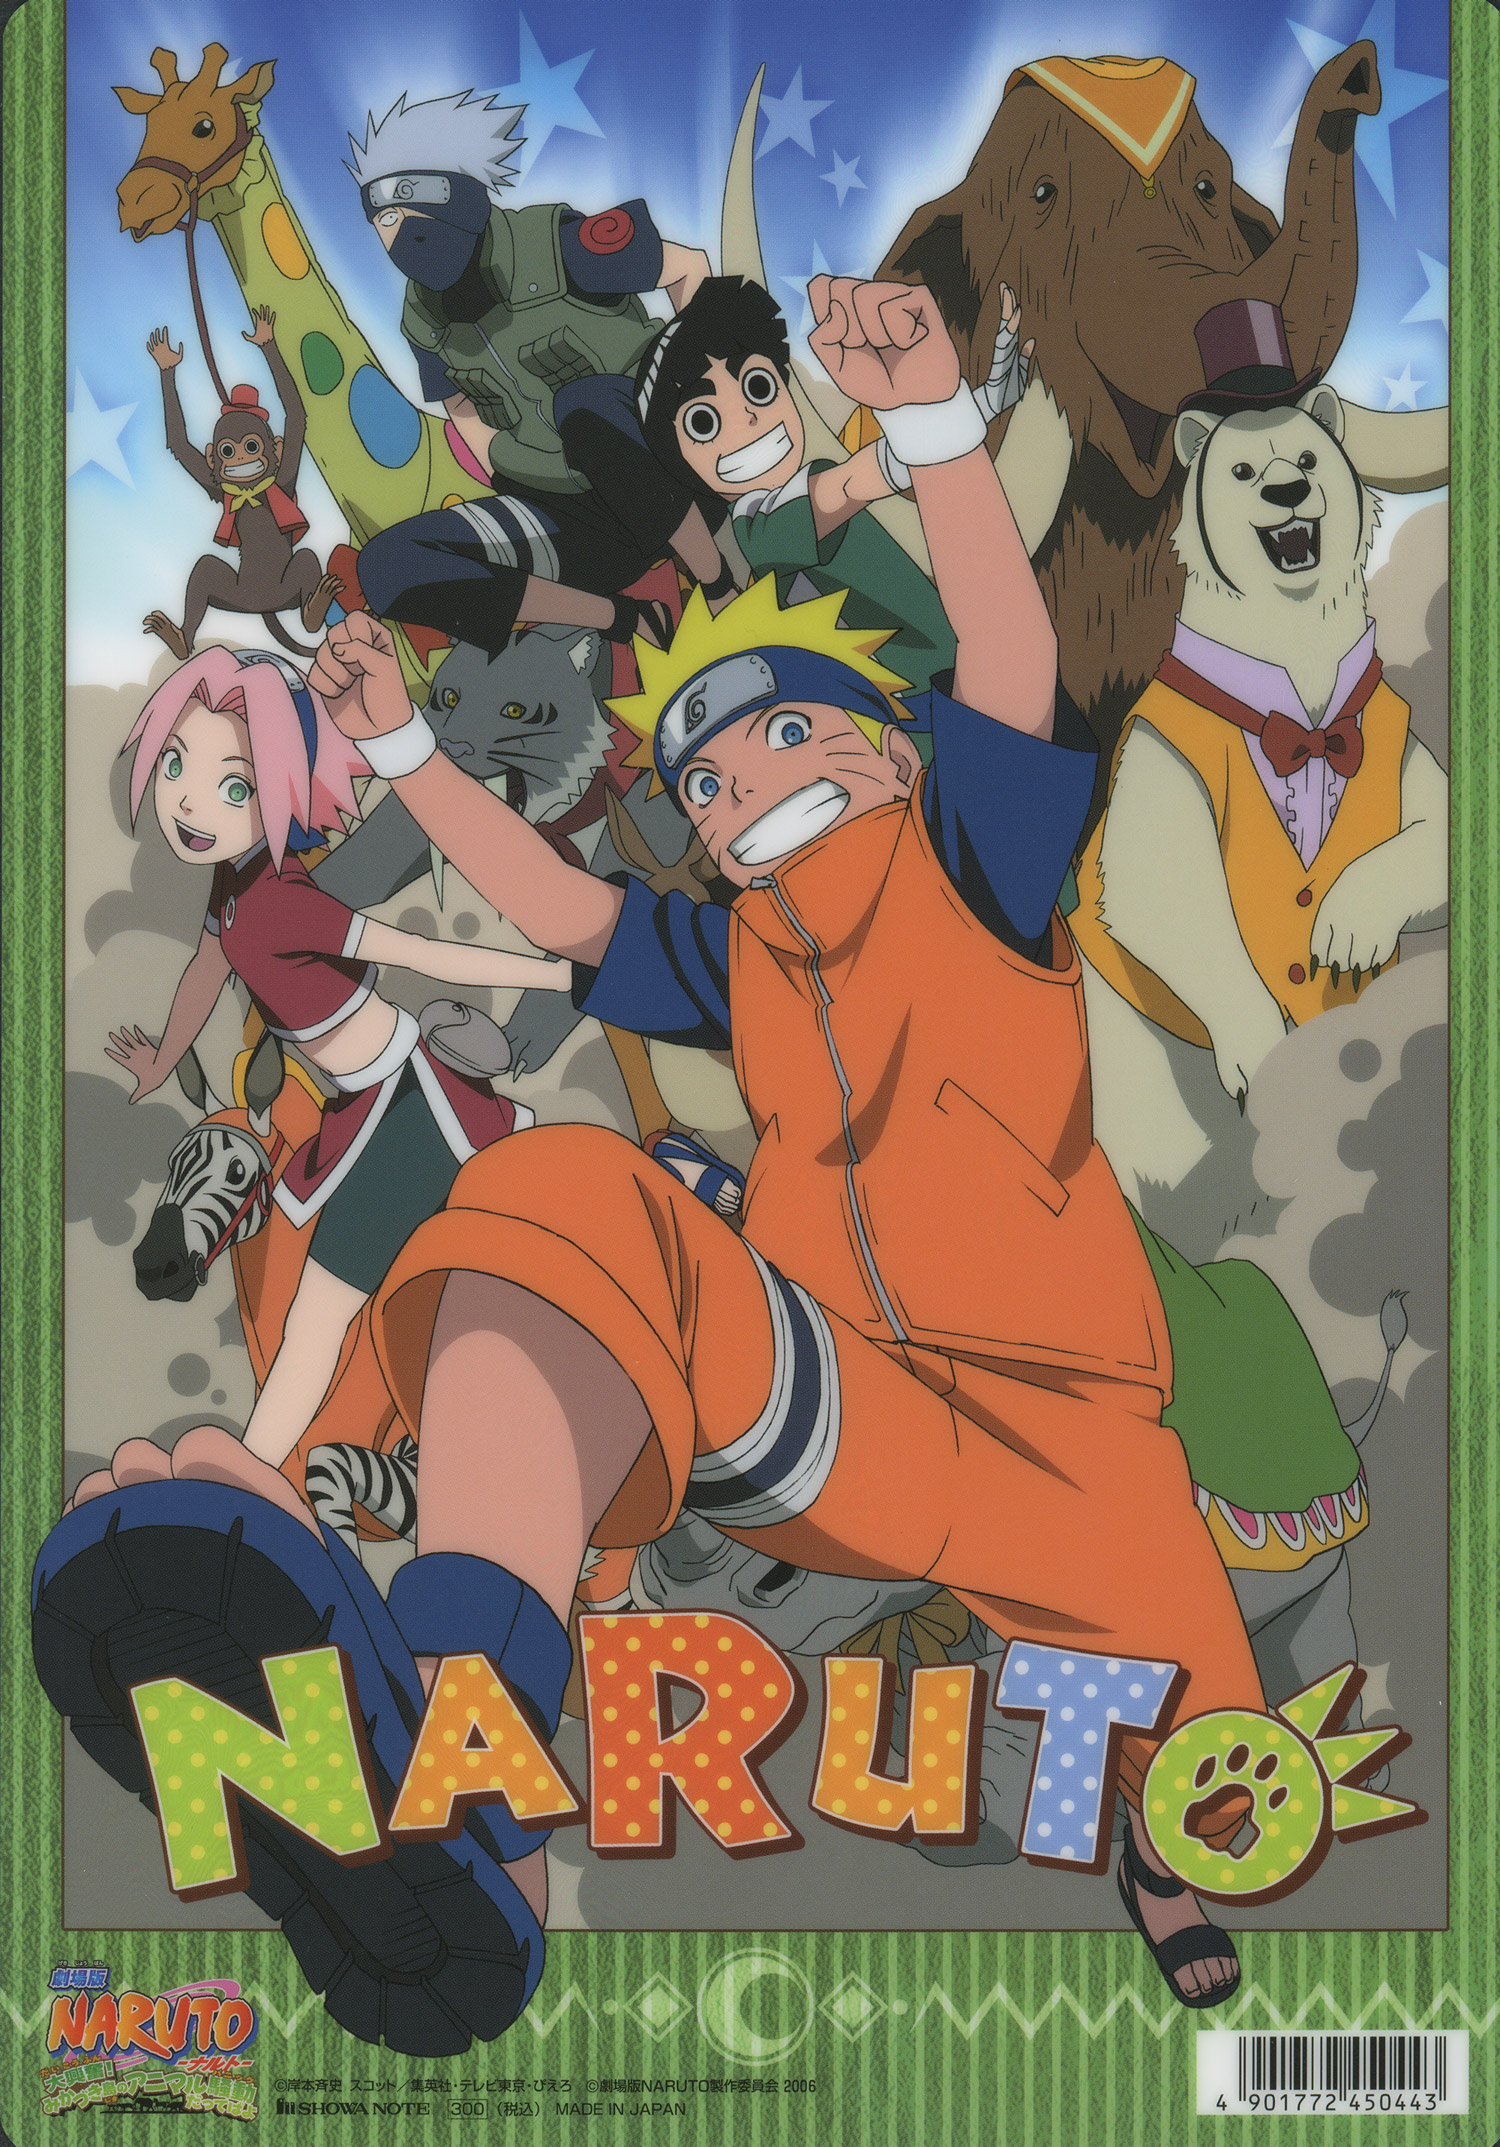 Naruto the Movie Guardians of the Crescent Moon Kingdom Manga Promo